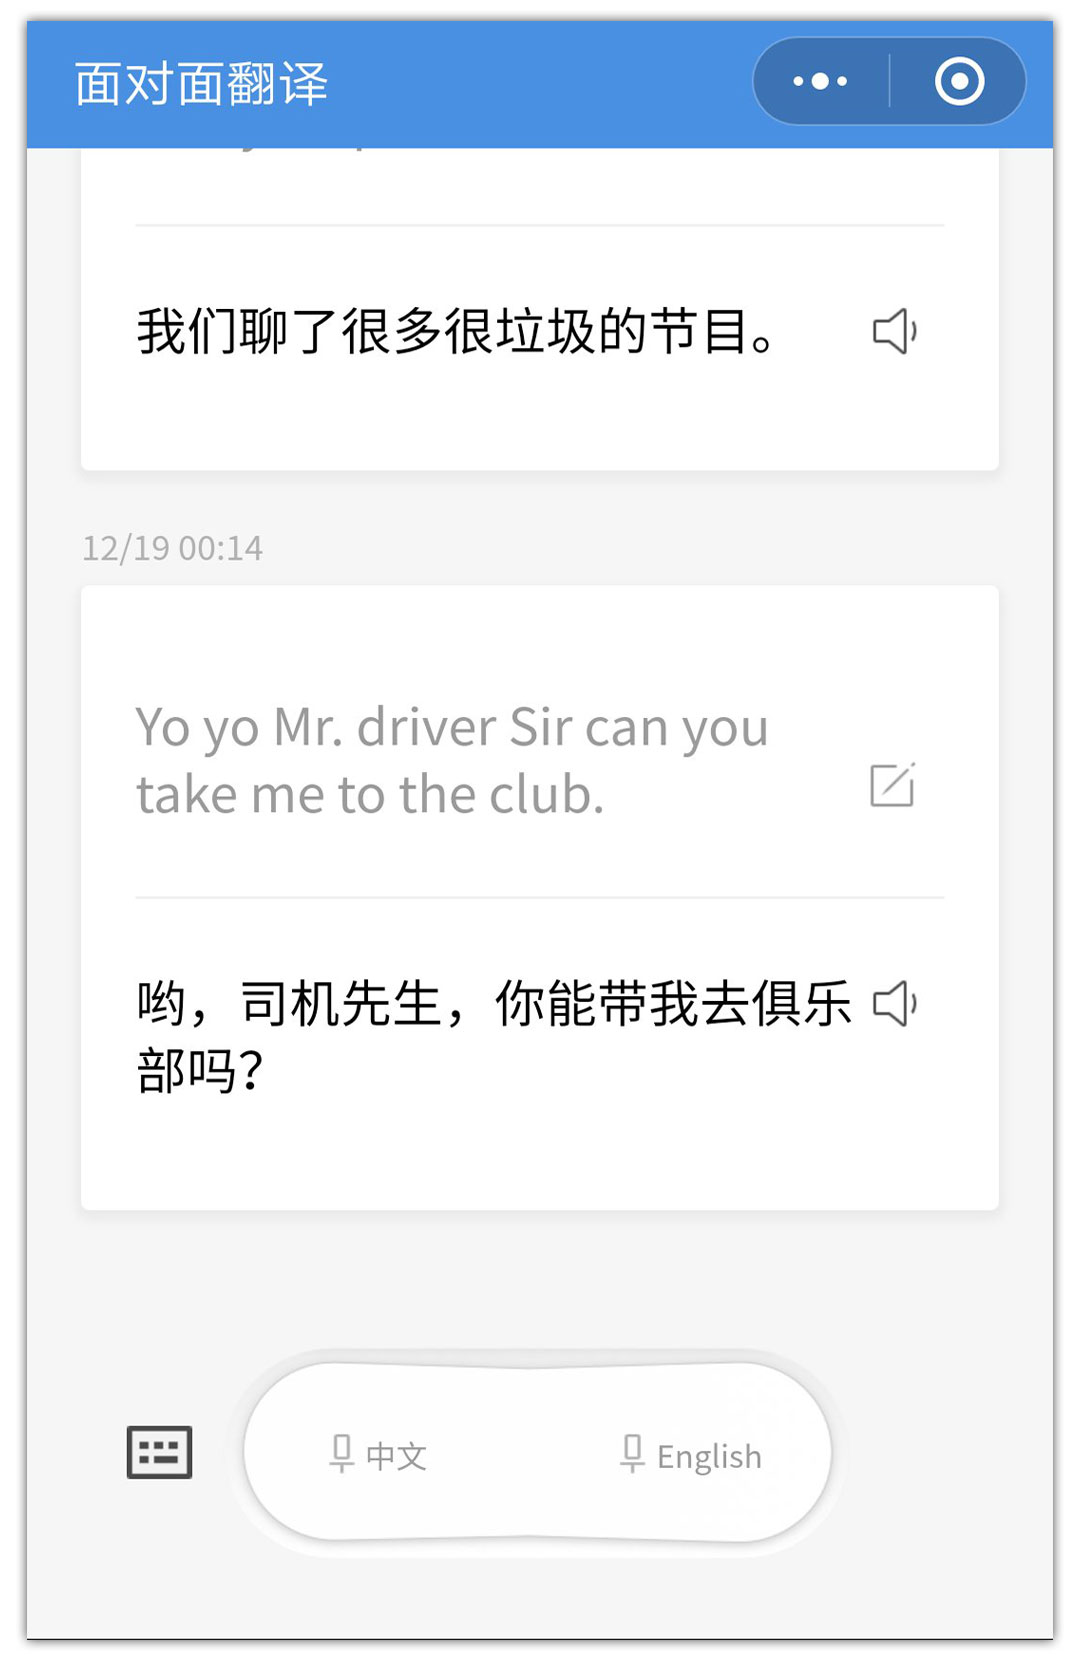 Chinese English Voice Recognition Translation Mini Program